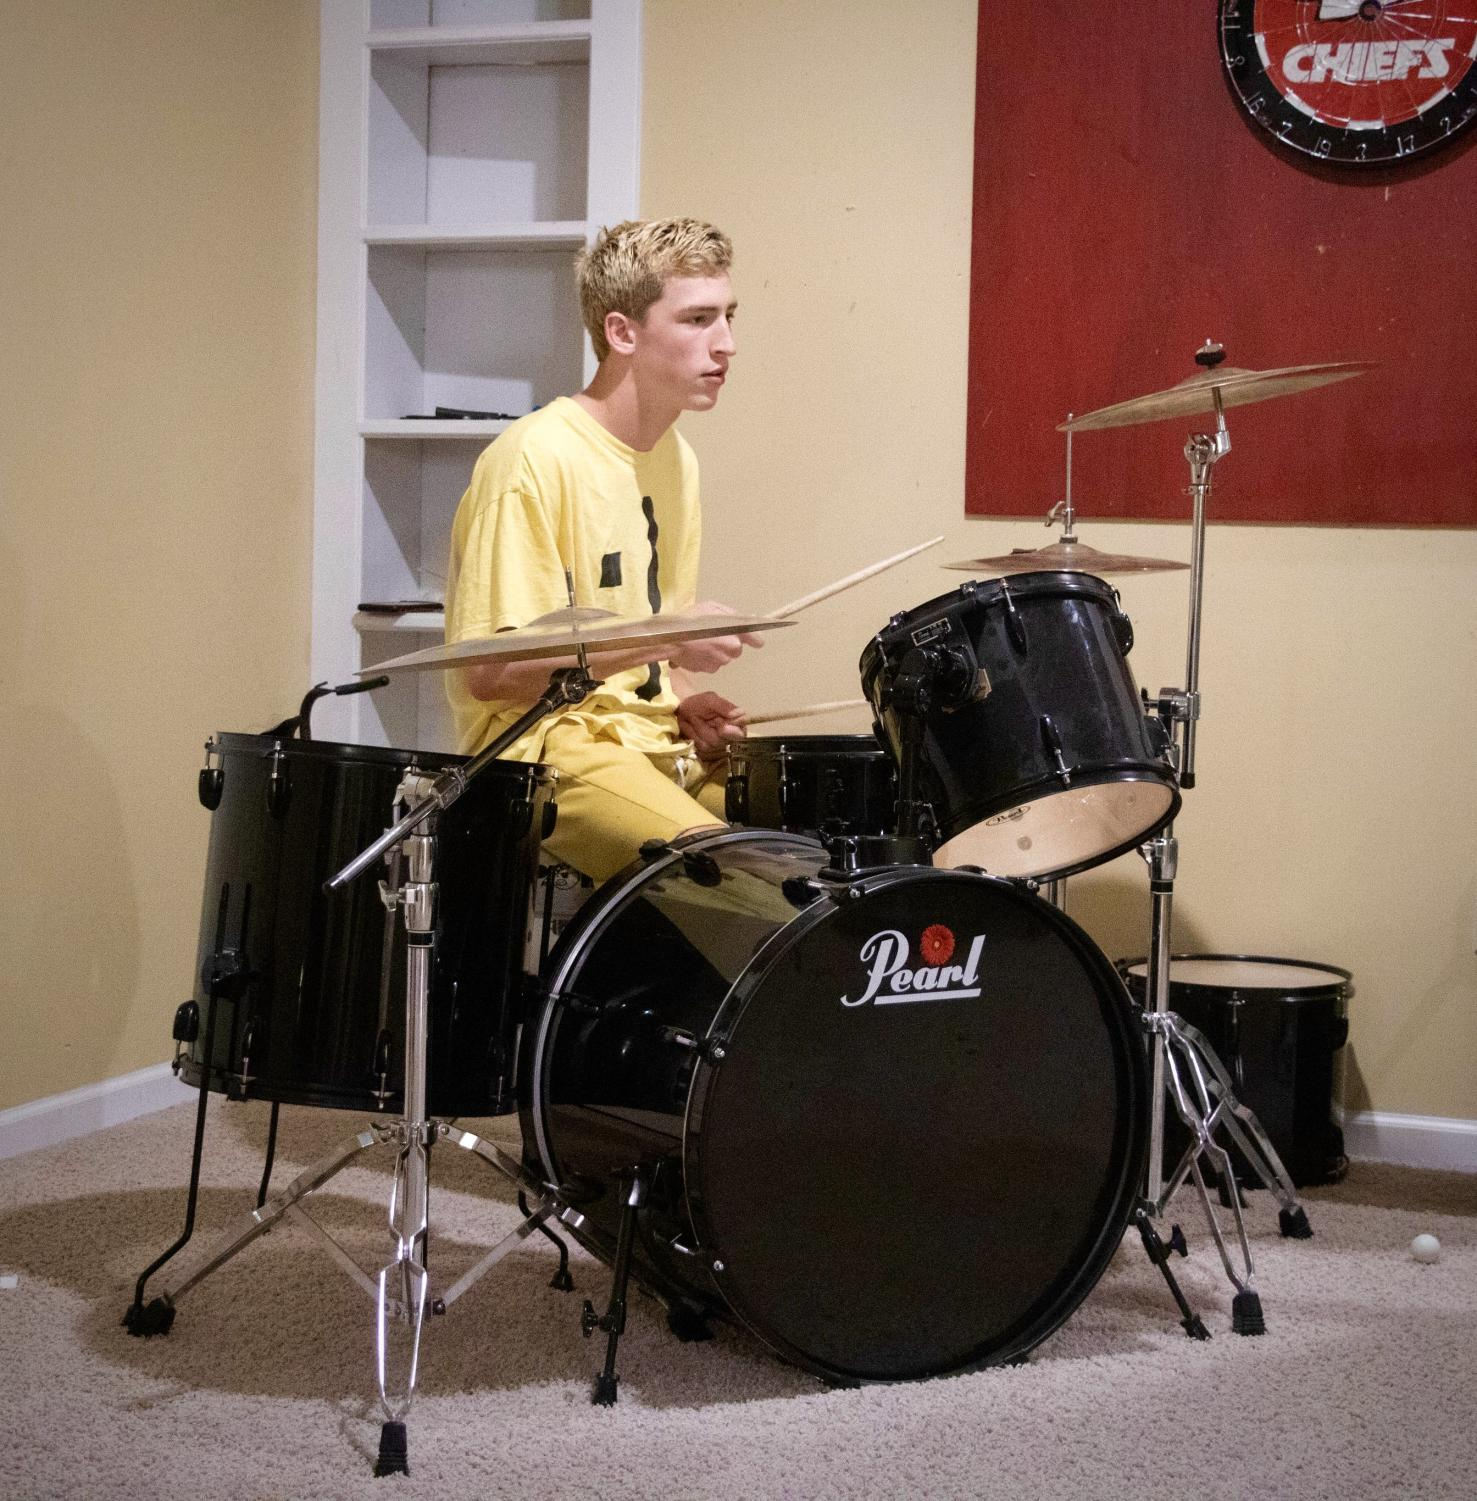 Senior Watchman Whitworth plays the drum set with his band, on Sep. 6.